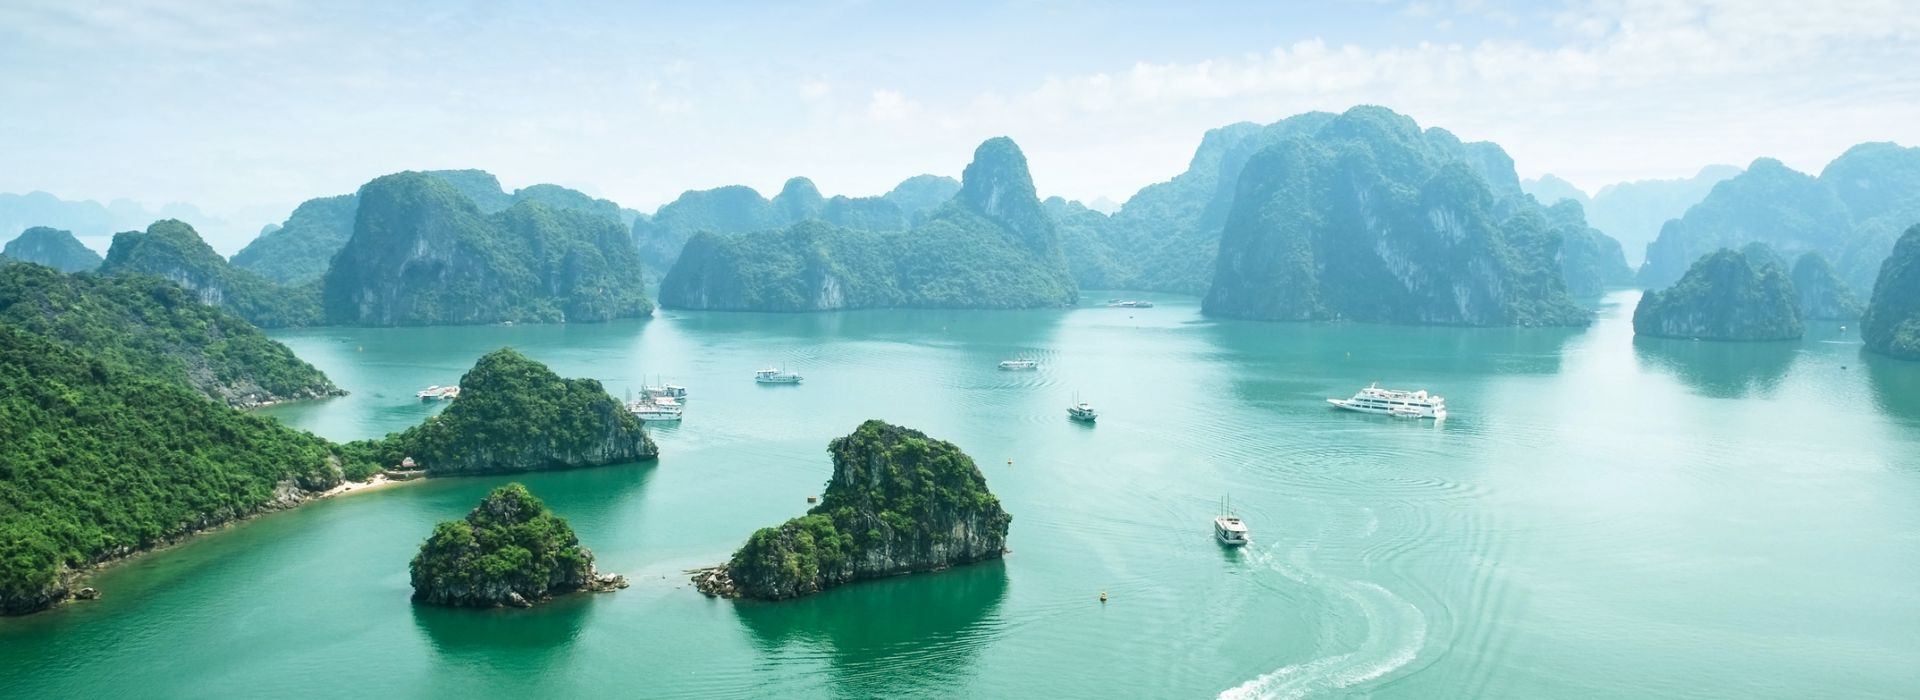 Sightseeing, attractions, culture and history Tours in Vietnam